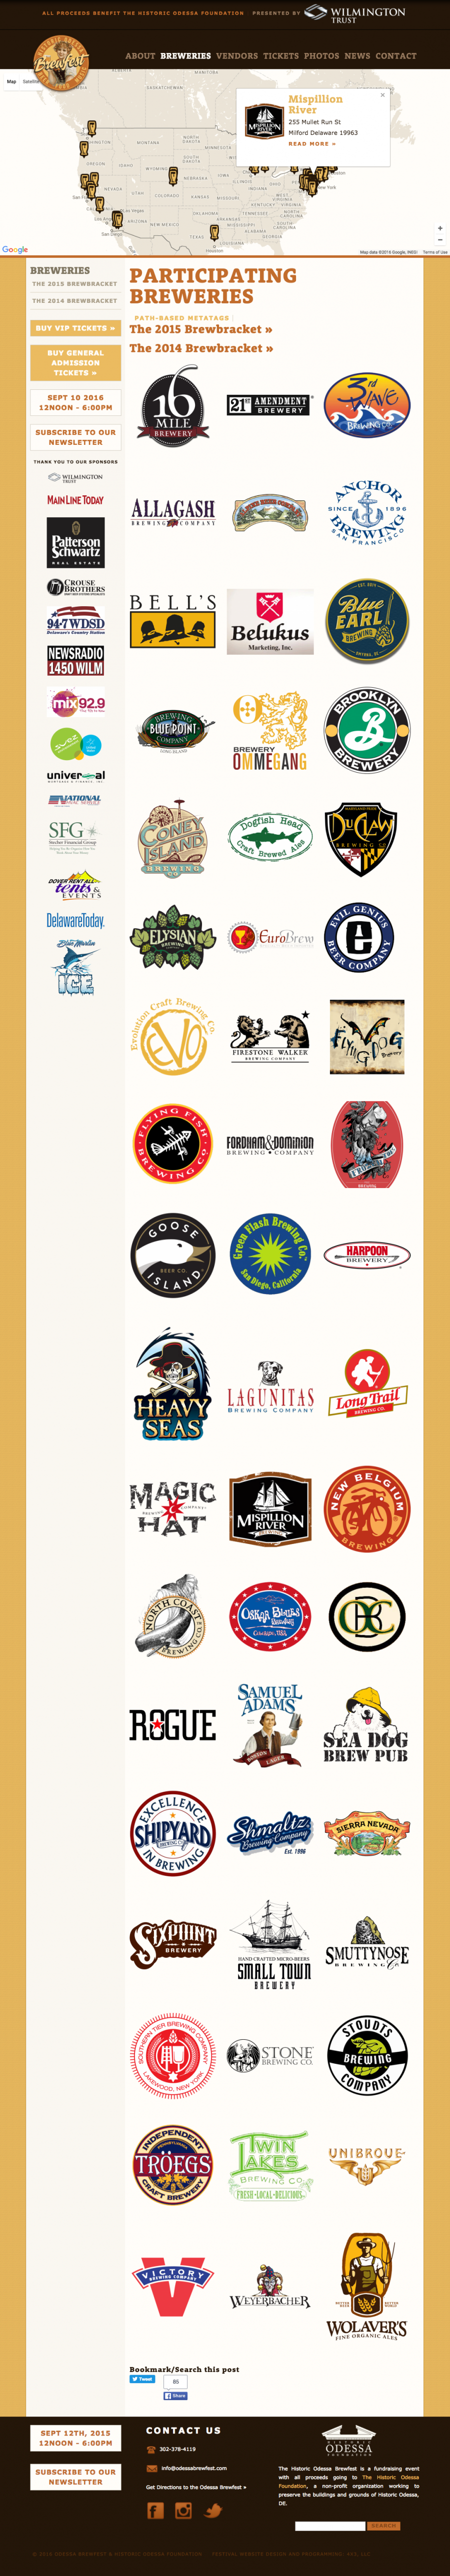 Brewfest Featured Breweries landing page